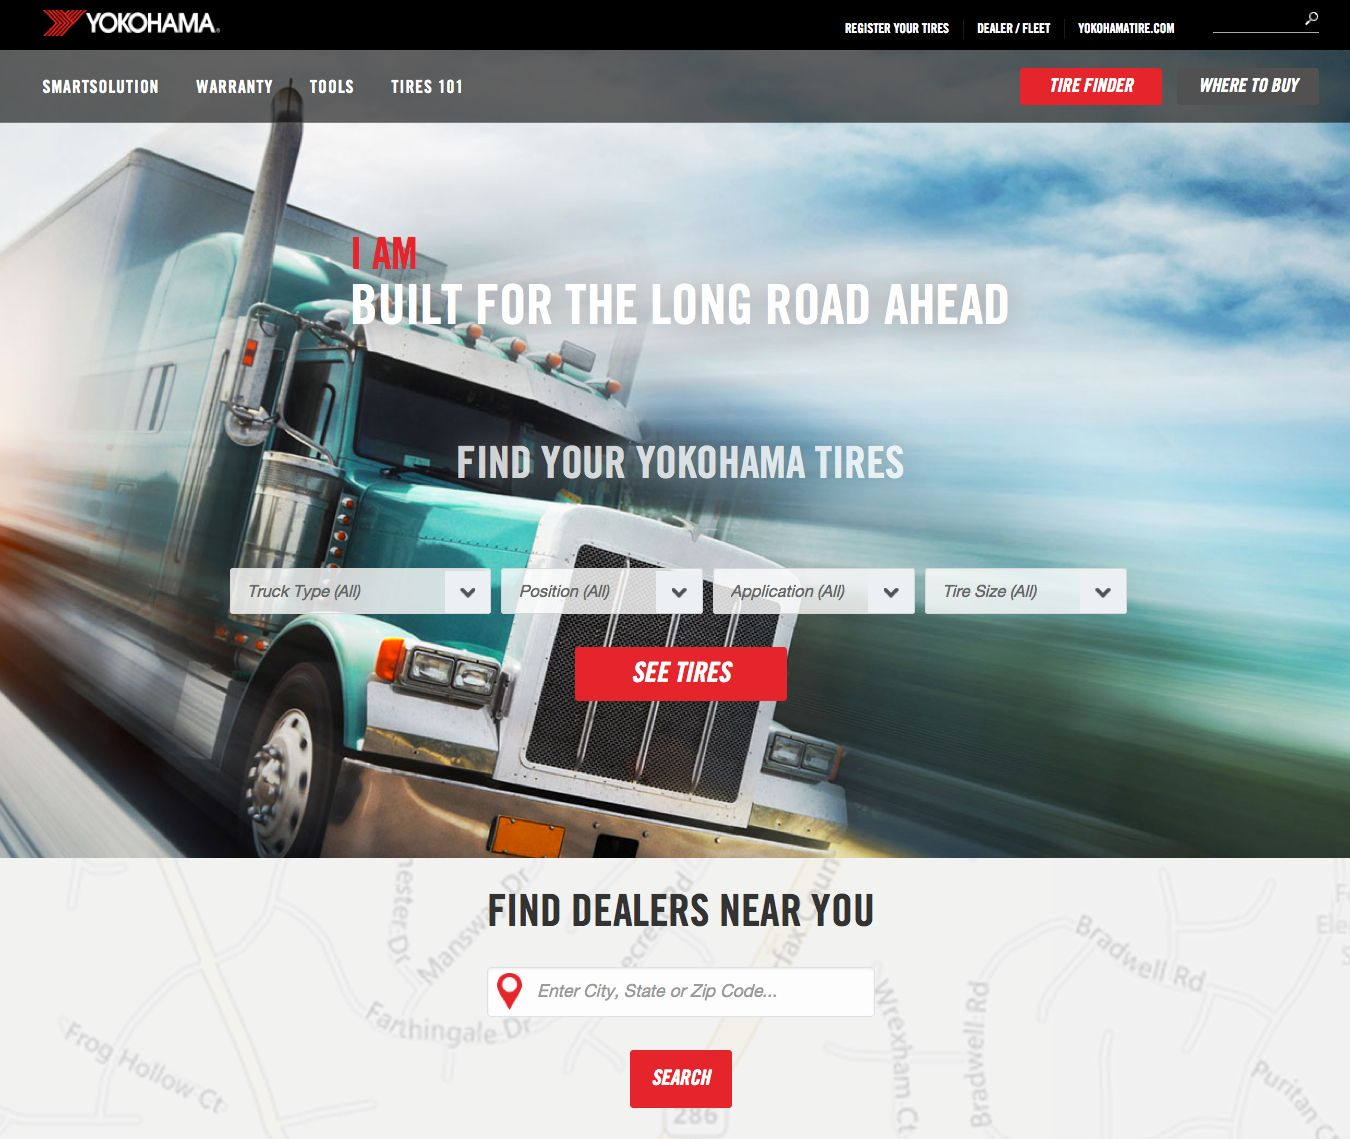 Yokohama launches truck tire website